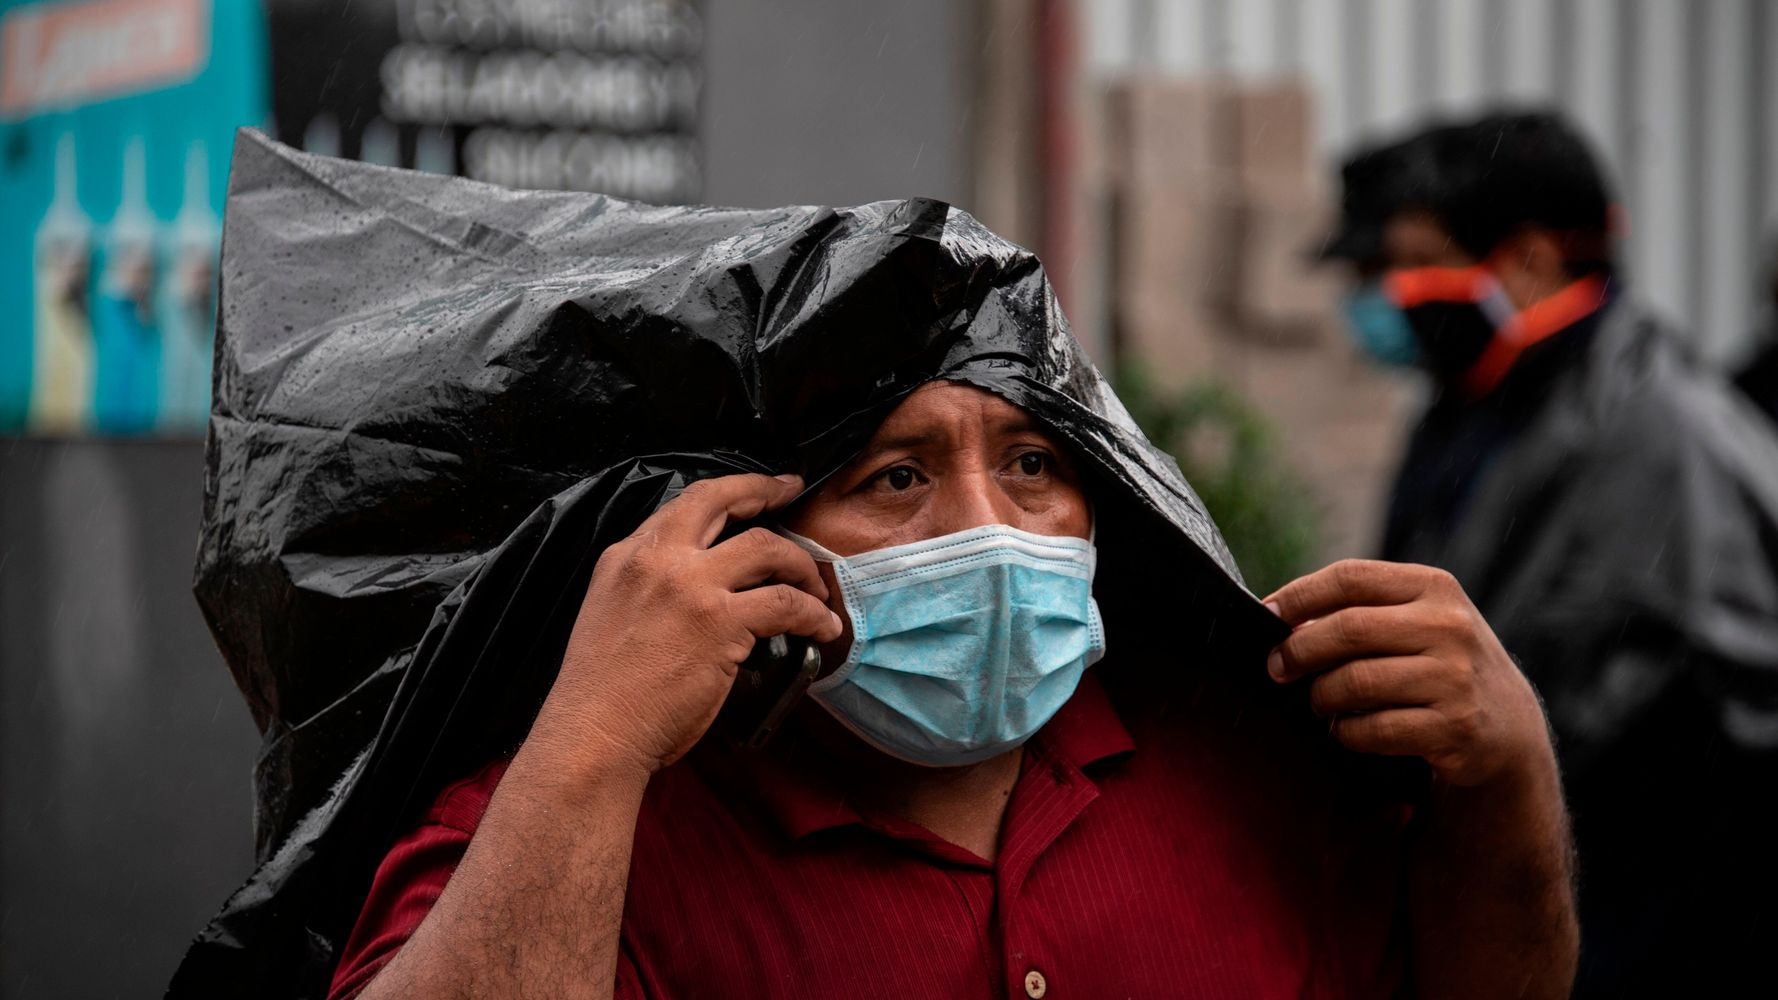 Storm Season Adds To Coronavirus Pandemic Worries For Mexico, Central America